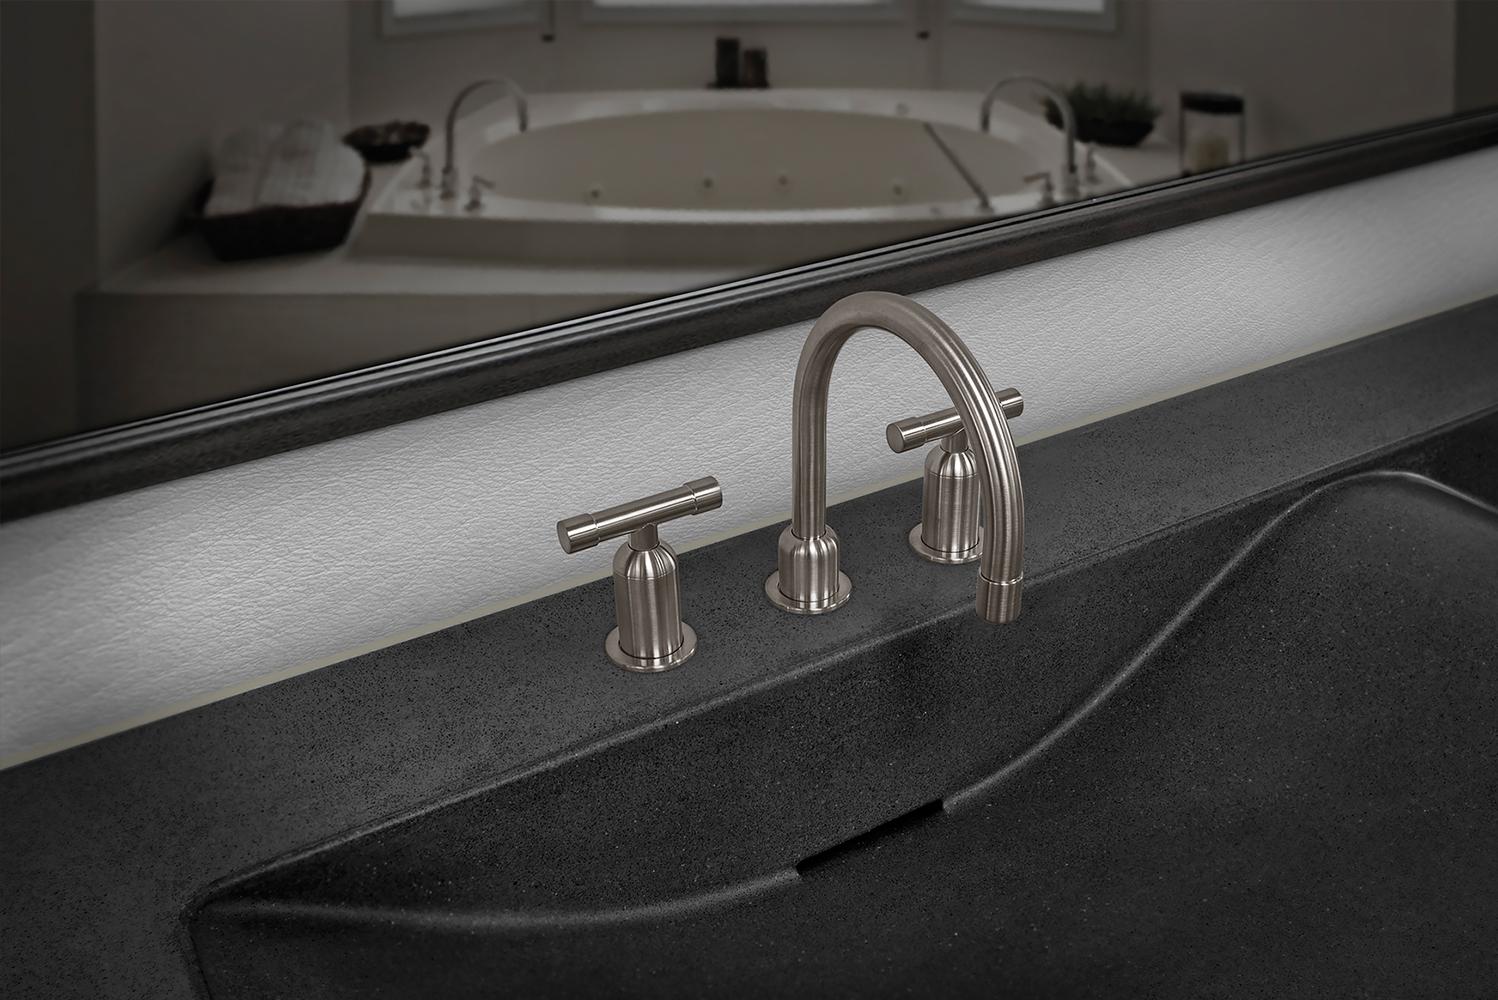 Sonoma Forge launched the WherEver faucets from the company's WaterBridge collection.